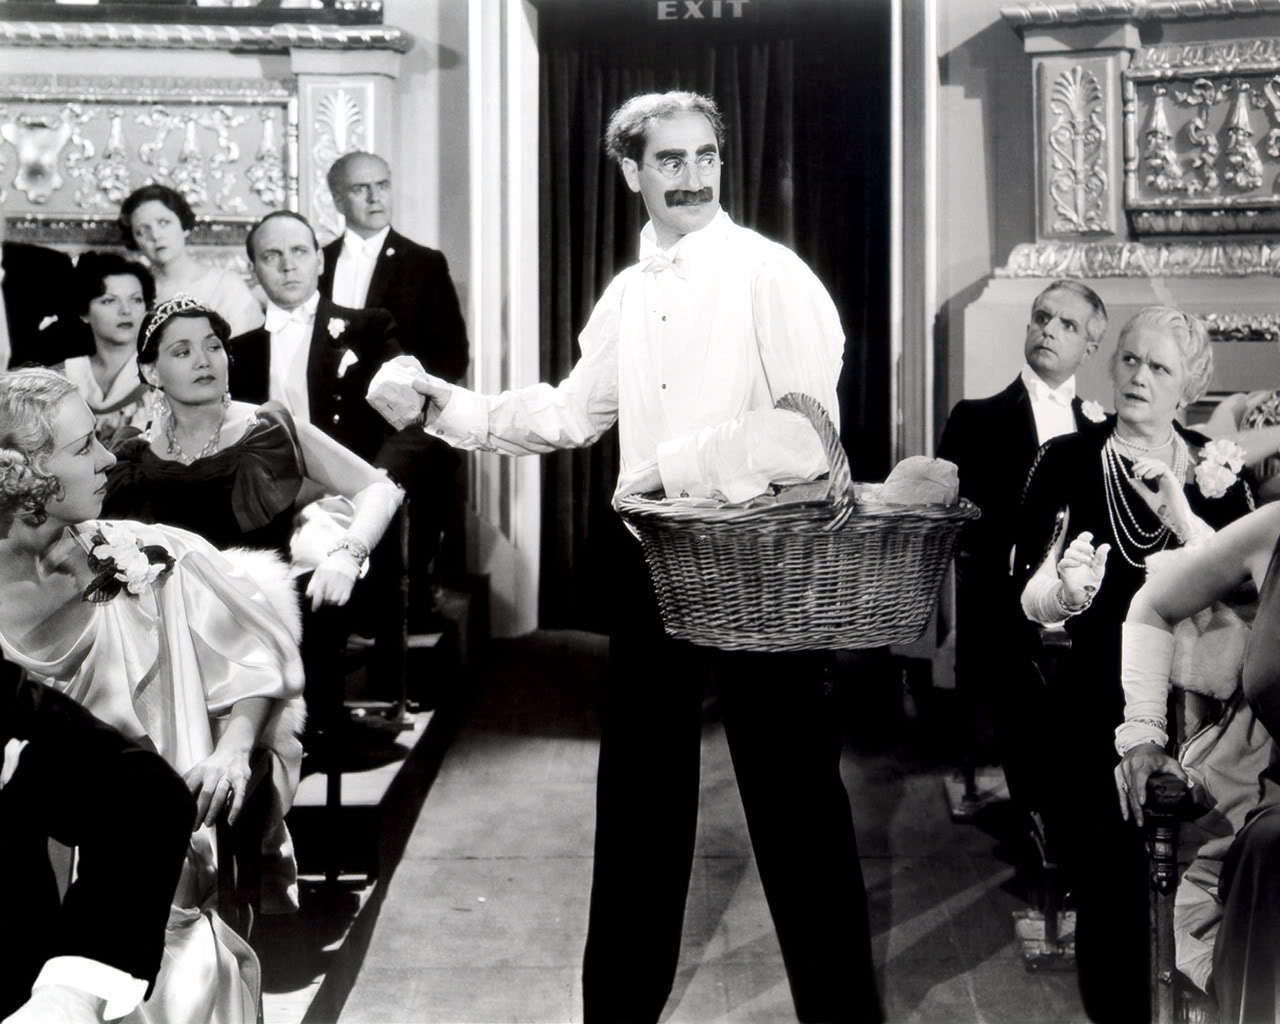 1280x1024 - Marx Brothers Wallpapers 9